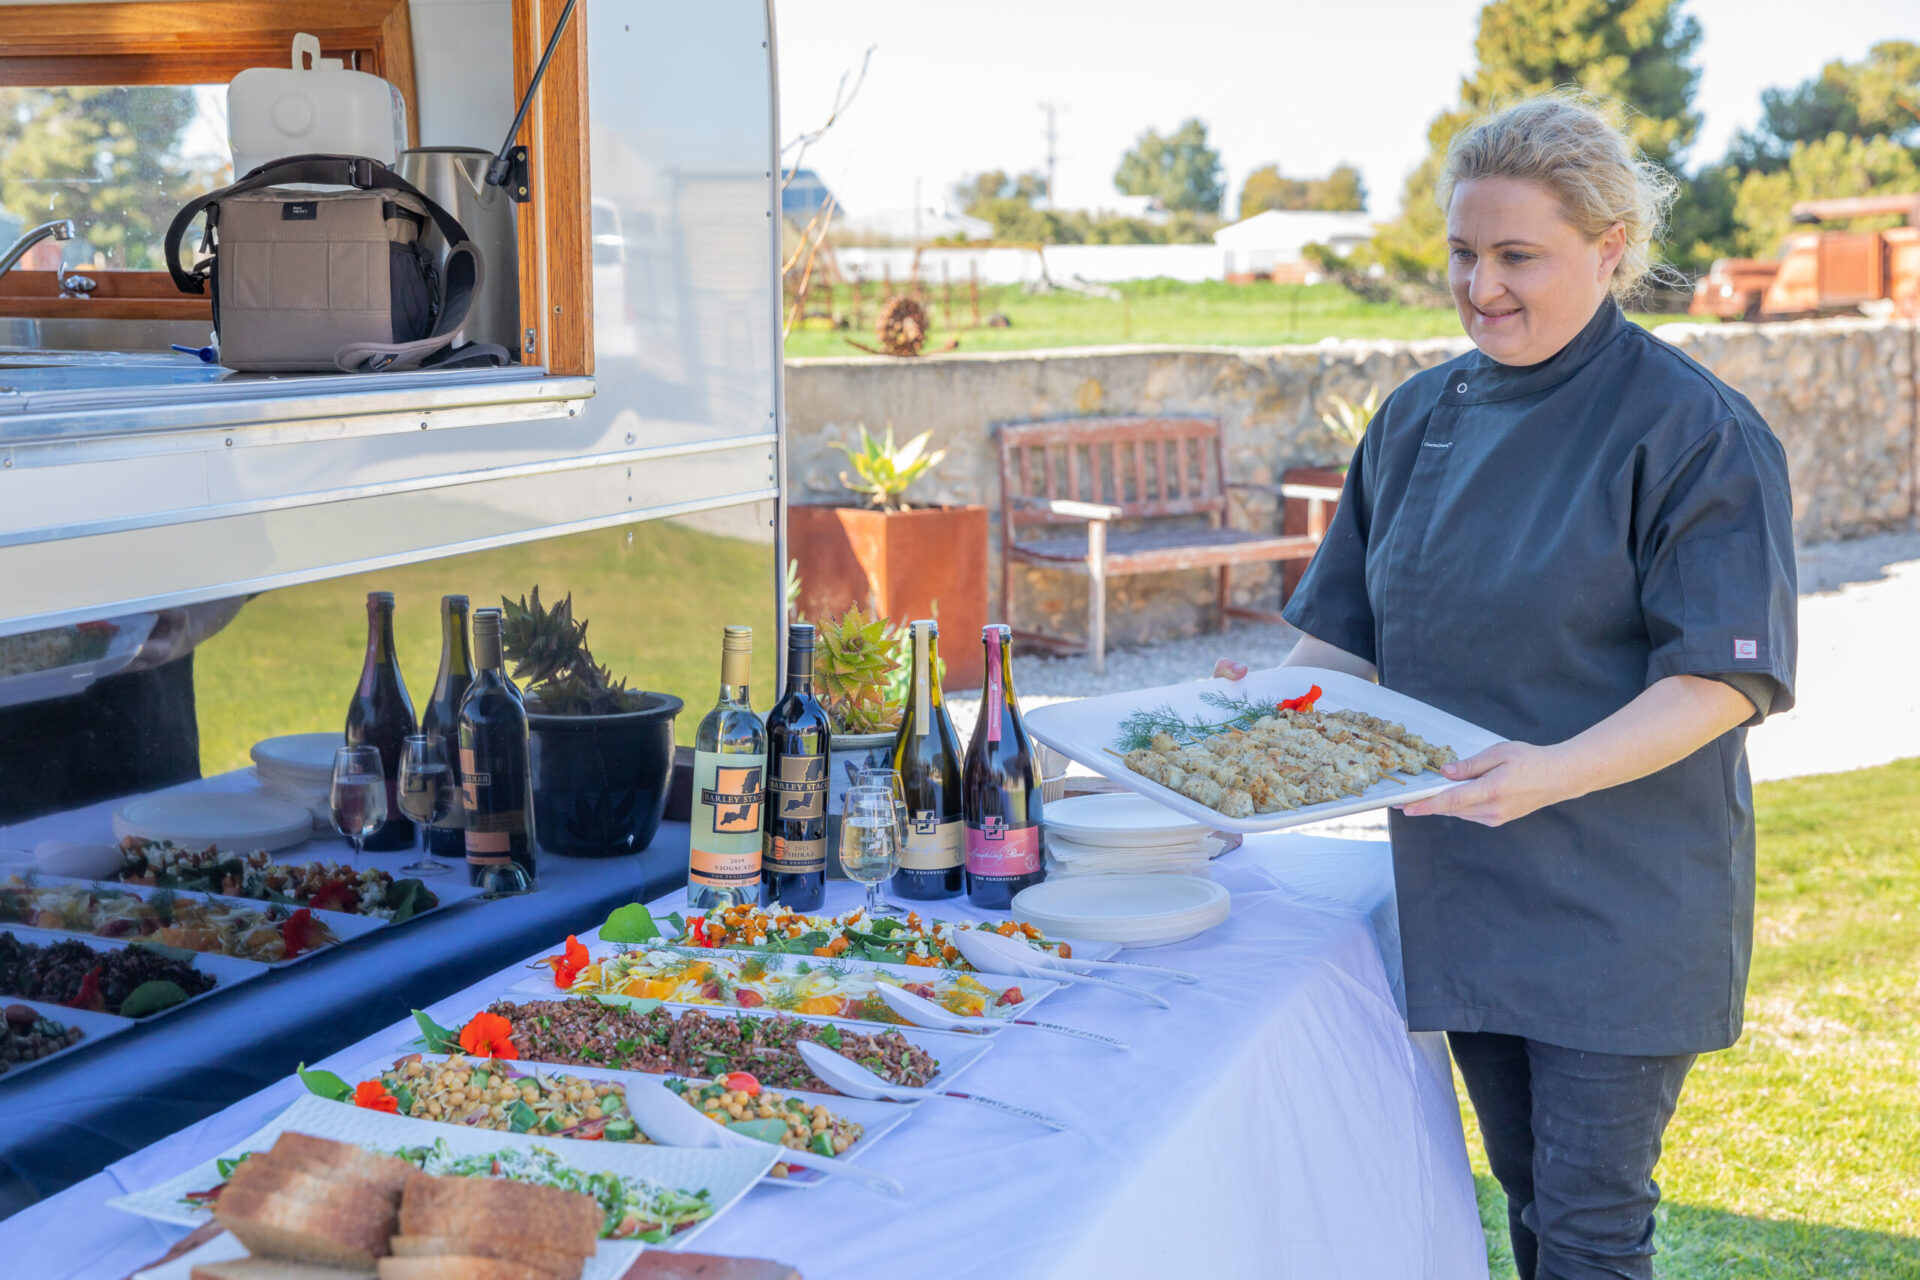 Caroline with serval food dishes in front of the Food Van.